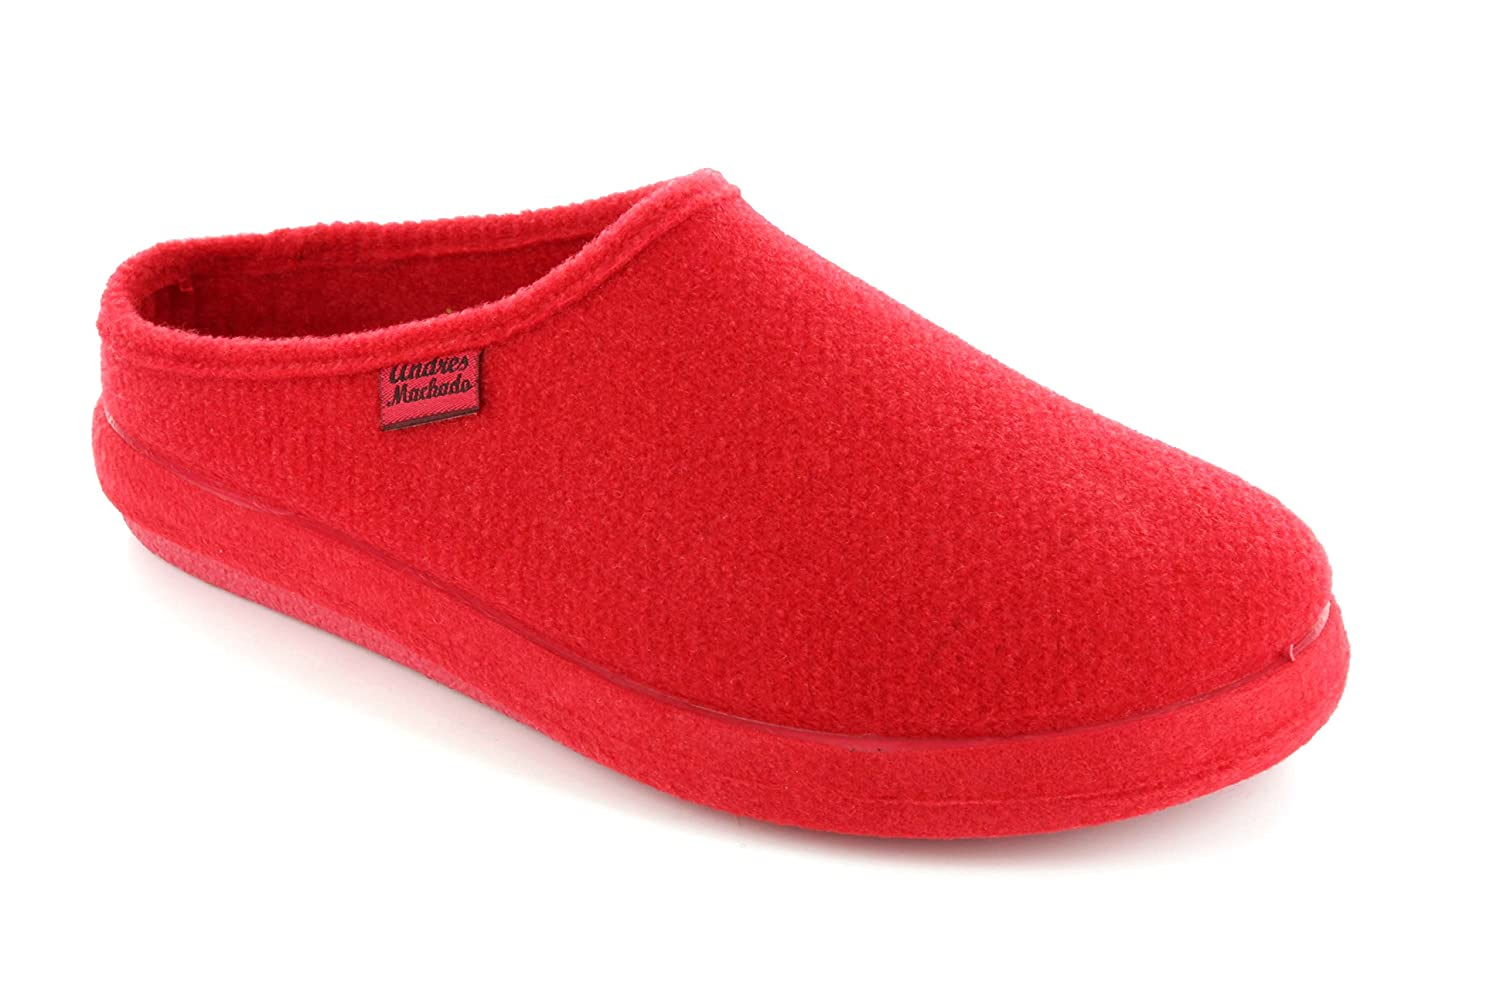 Andres Machado.AM001.AUTHÉNTIQUES B00MY4MVGQ chaussons MADE 26/50 IN SPAIN Unisex.Petites et Grandes Rouge Pointures. 26/50 Rouge a7940ab - therethere.space